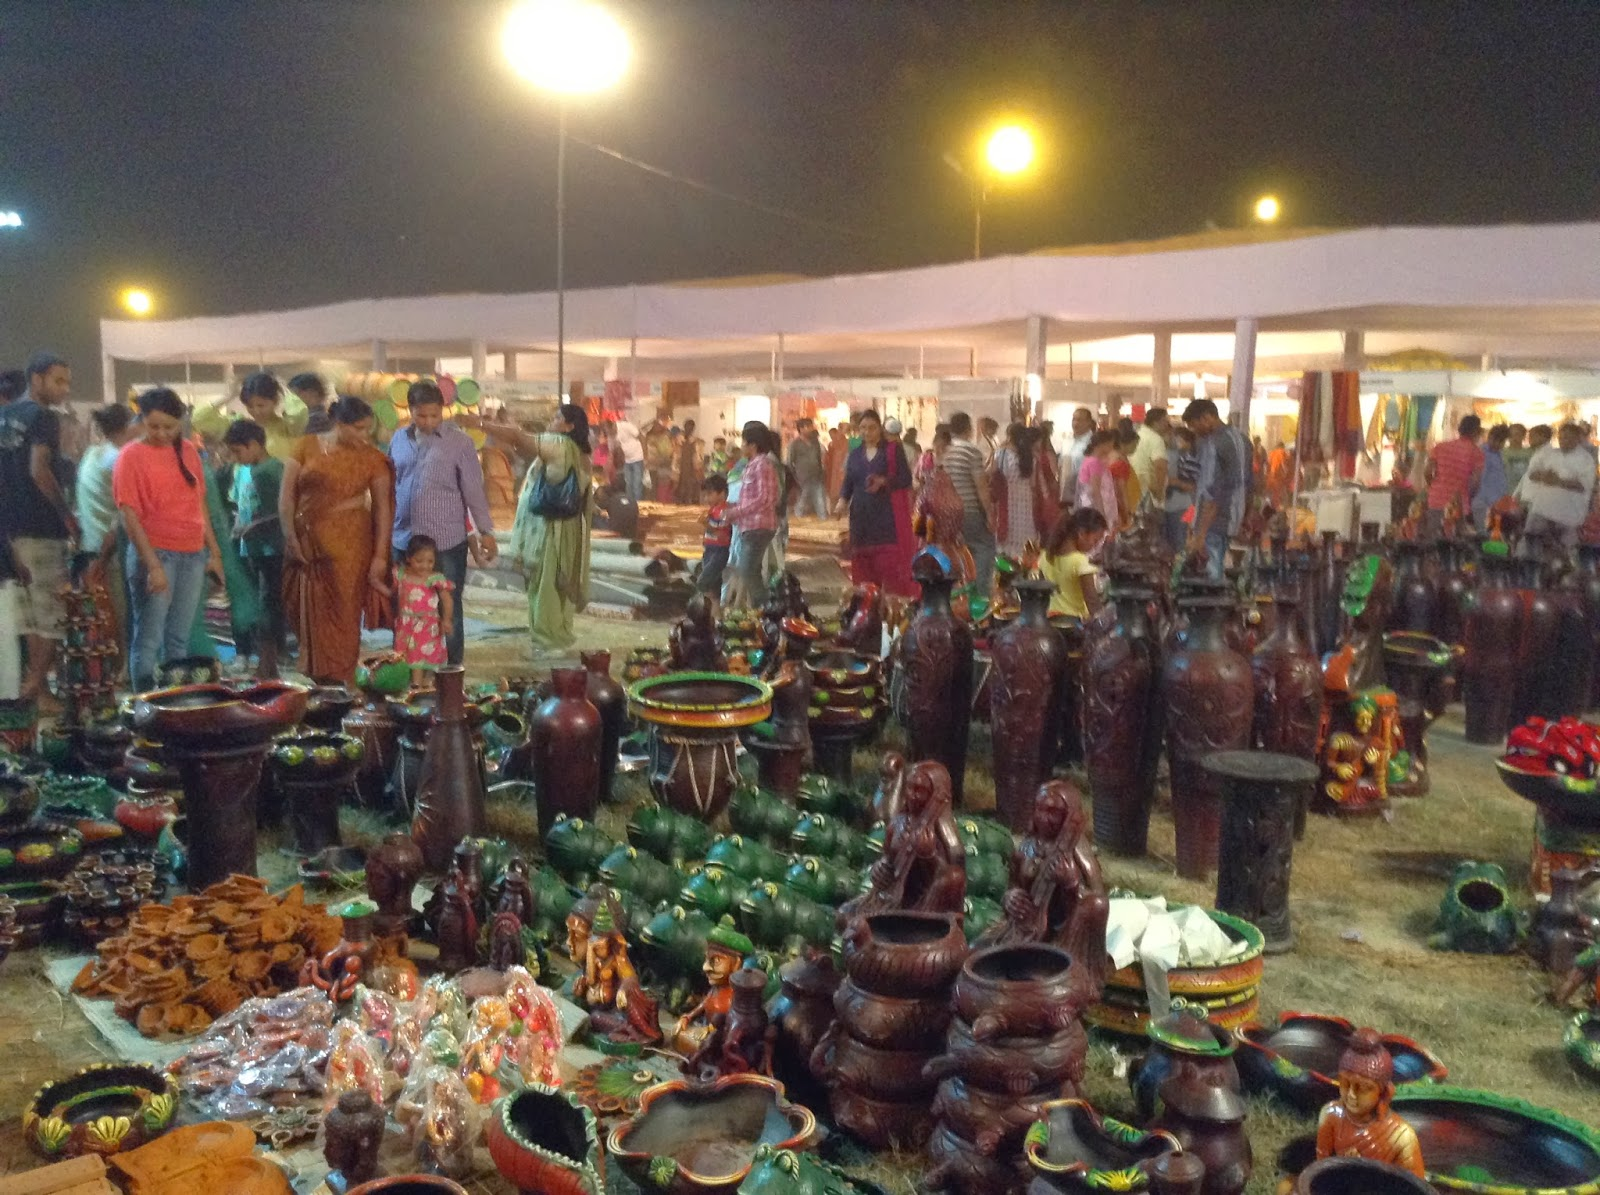 Deep Utsav is a Shoppers delight. Handicrafts items on display for sale.